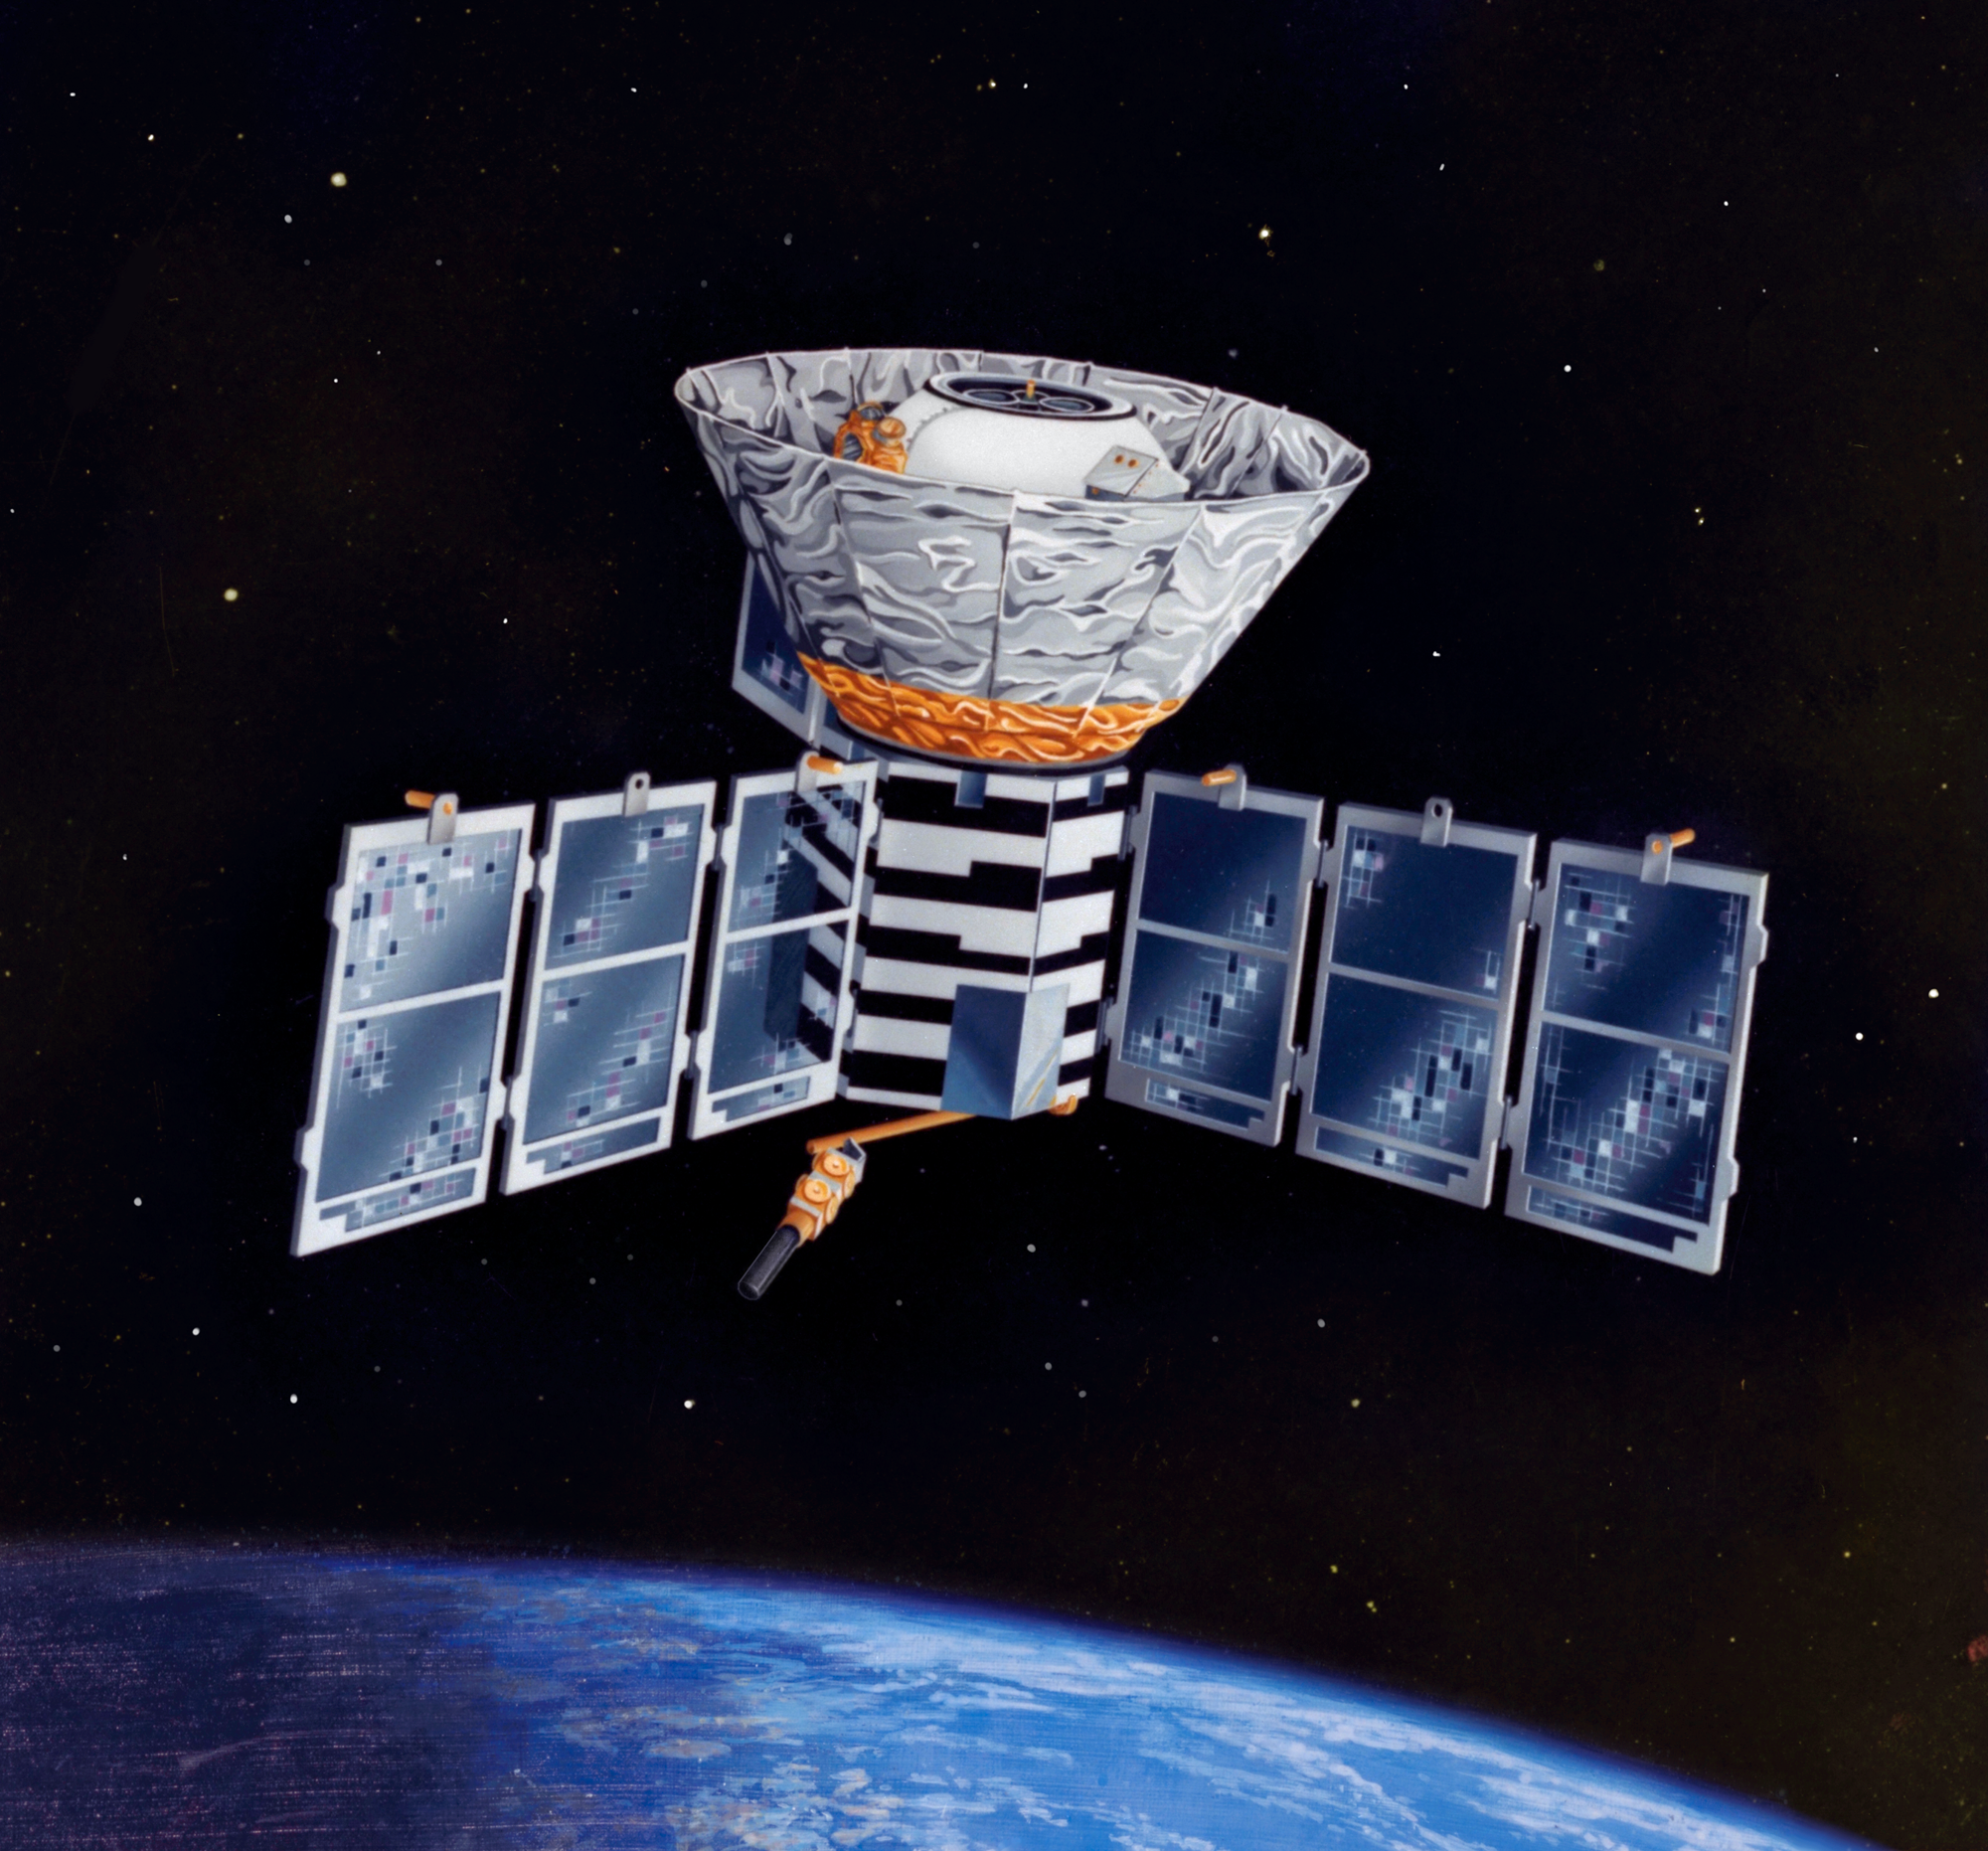 COBE Satellite in Orbit